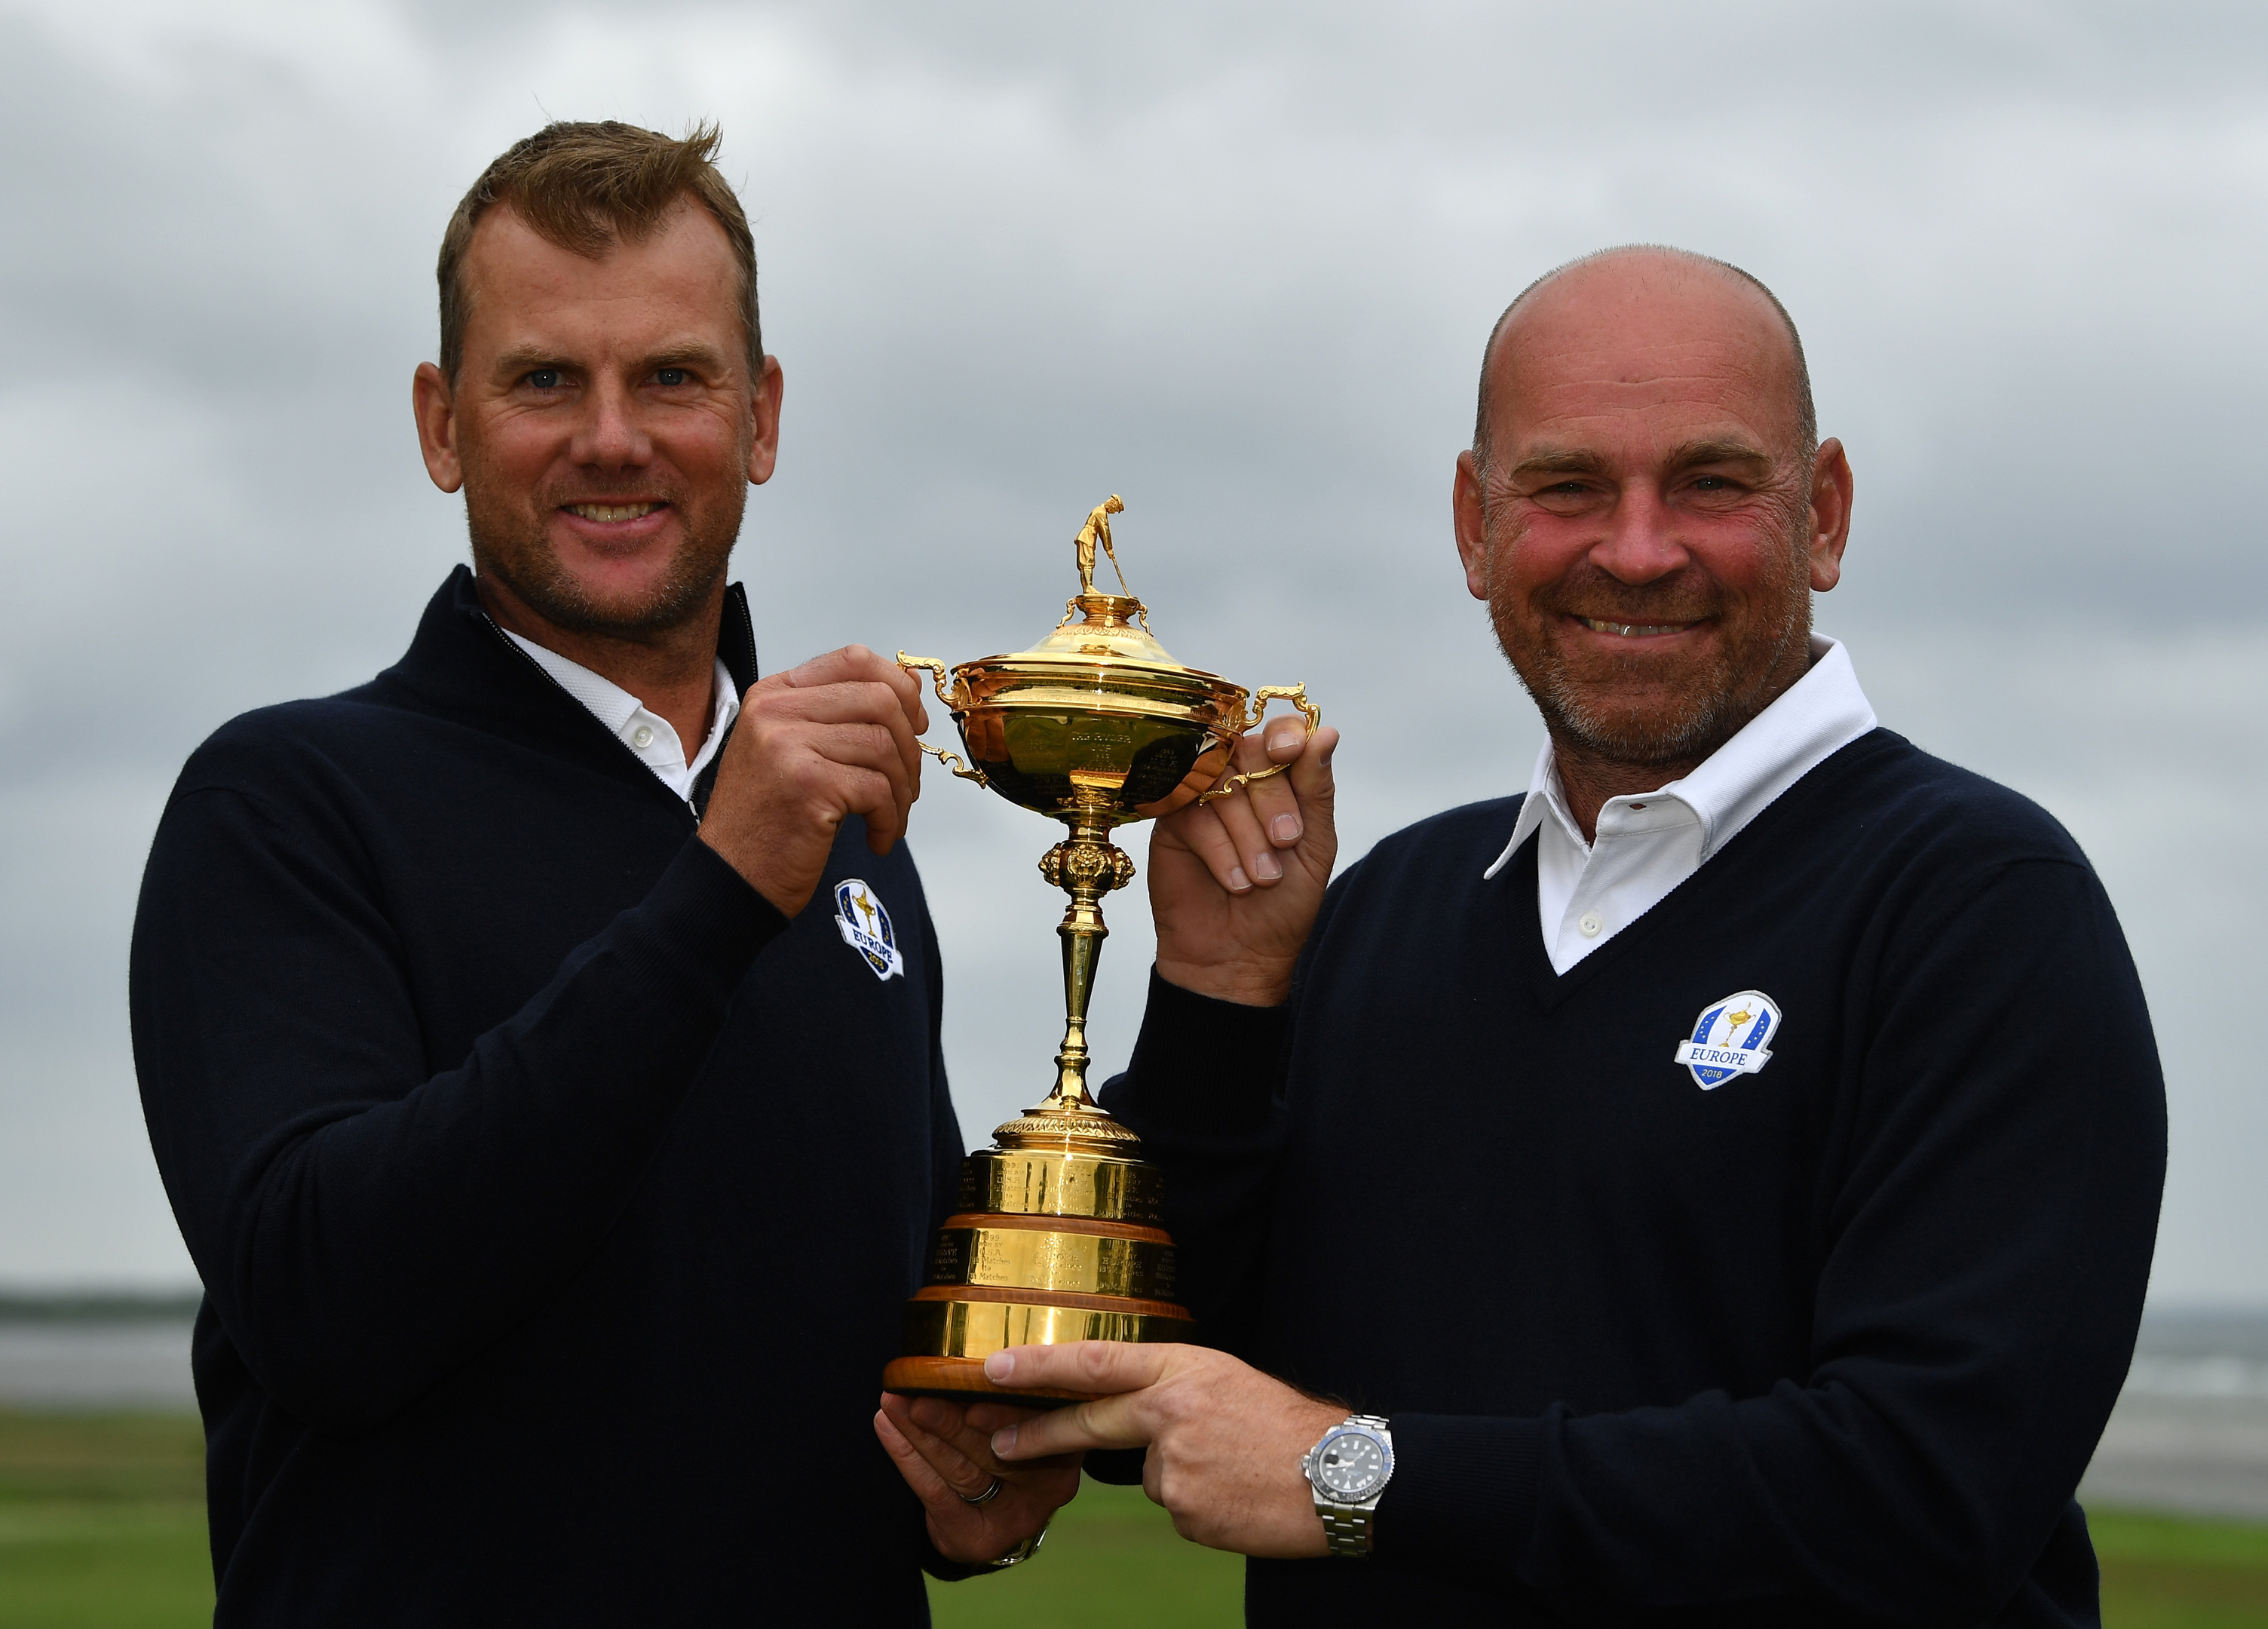 Robert Karlsson is the first of European Ryder Cup captain Thomas Bjorn's assistants for the matches against the USA in Paris next year.